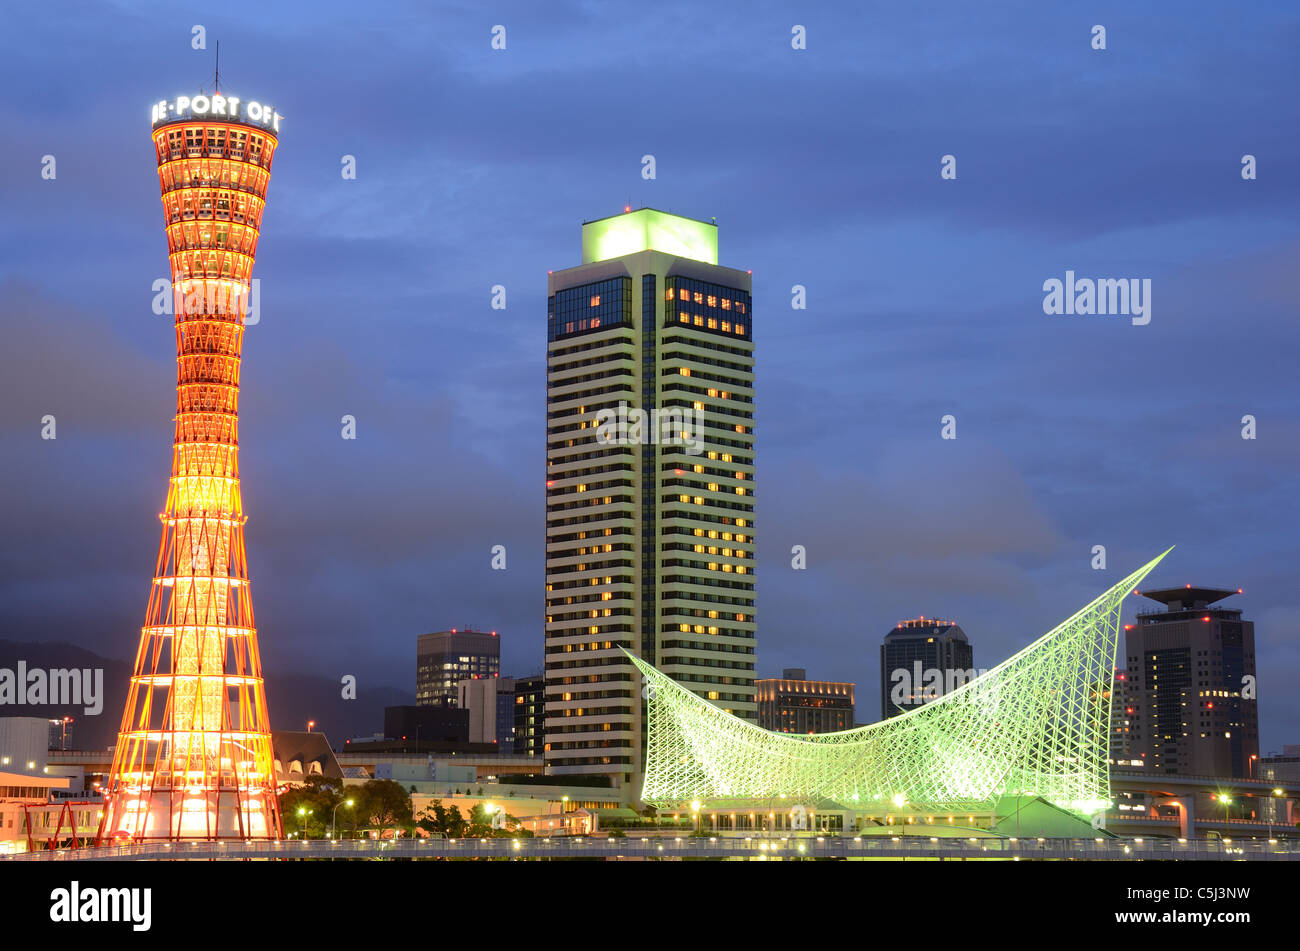 The Skyline of Kobe, Japan at Harborland. - Stock Image